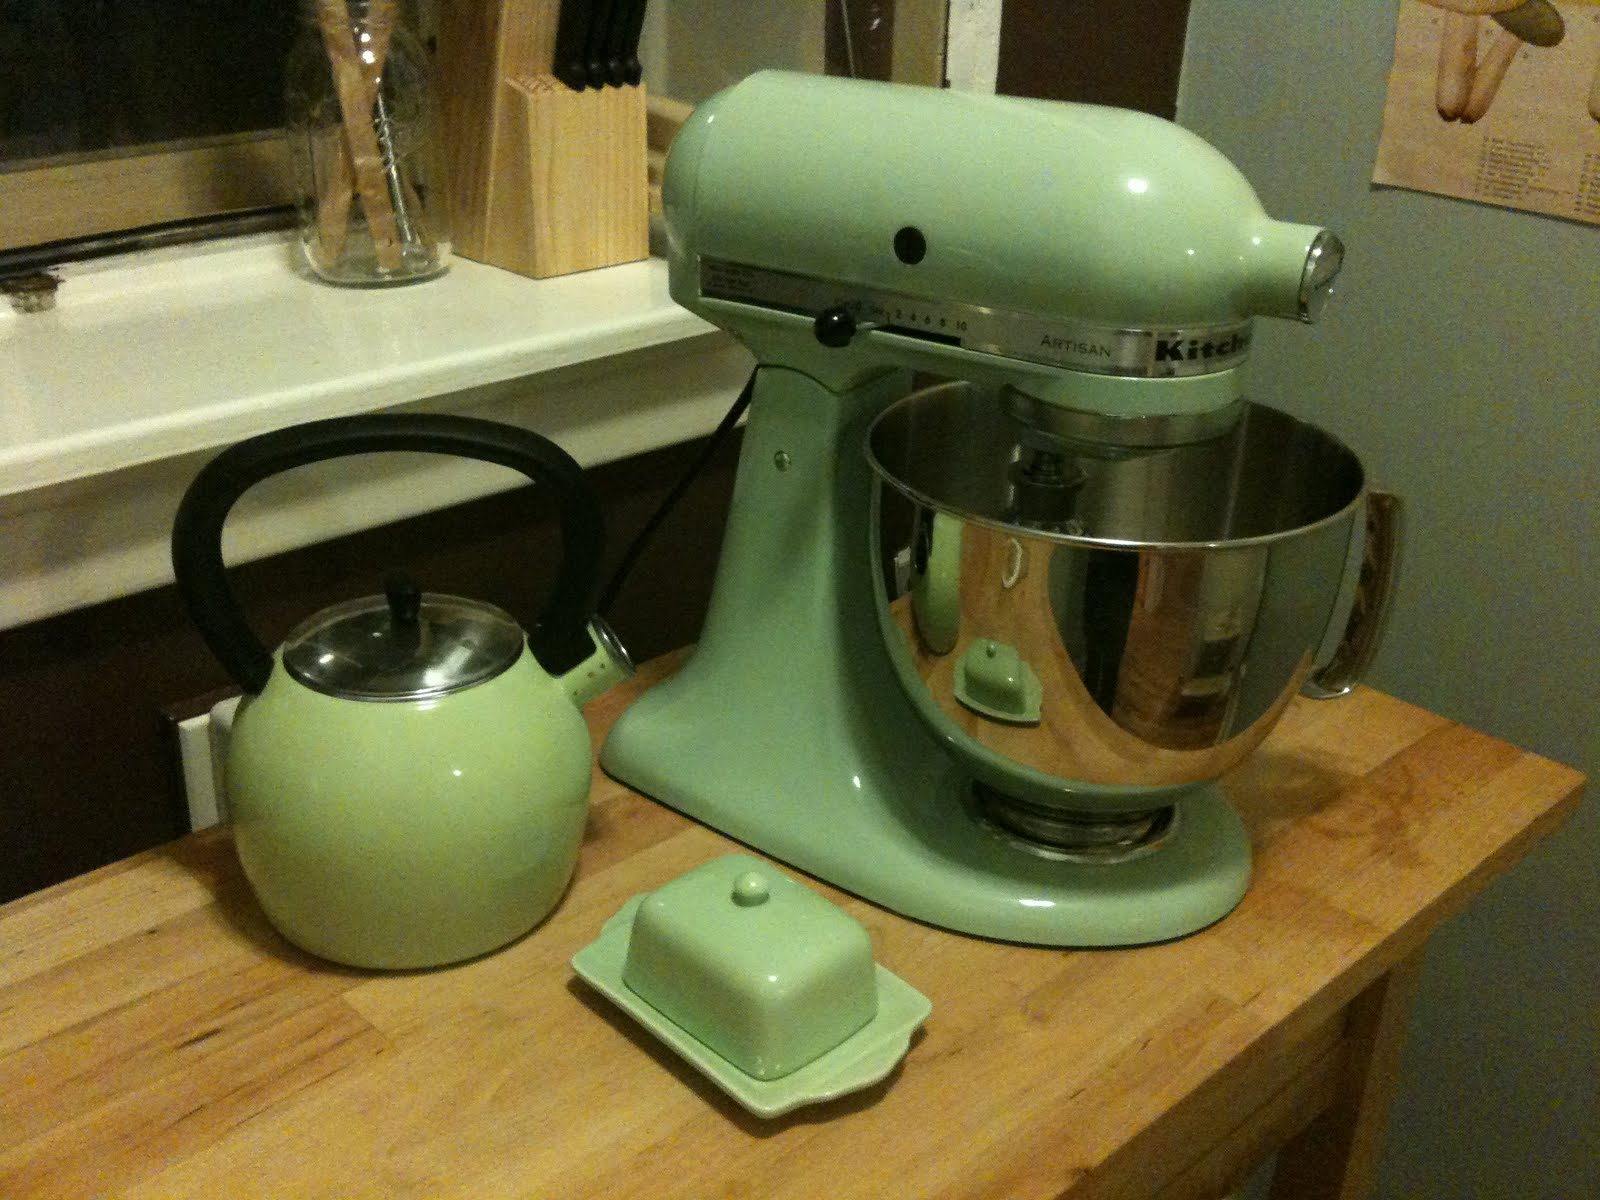 Exceptionnel The KitchenAid 5 Quart Artisan Stand Mixer: All The Details You Didnu0027t Know